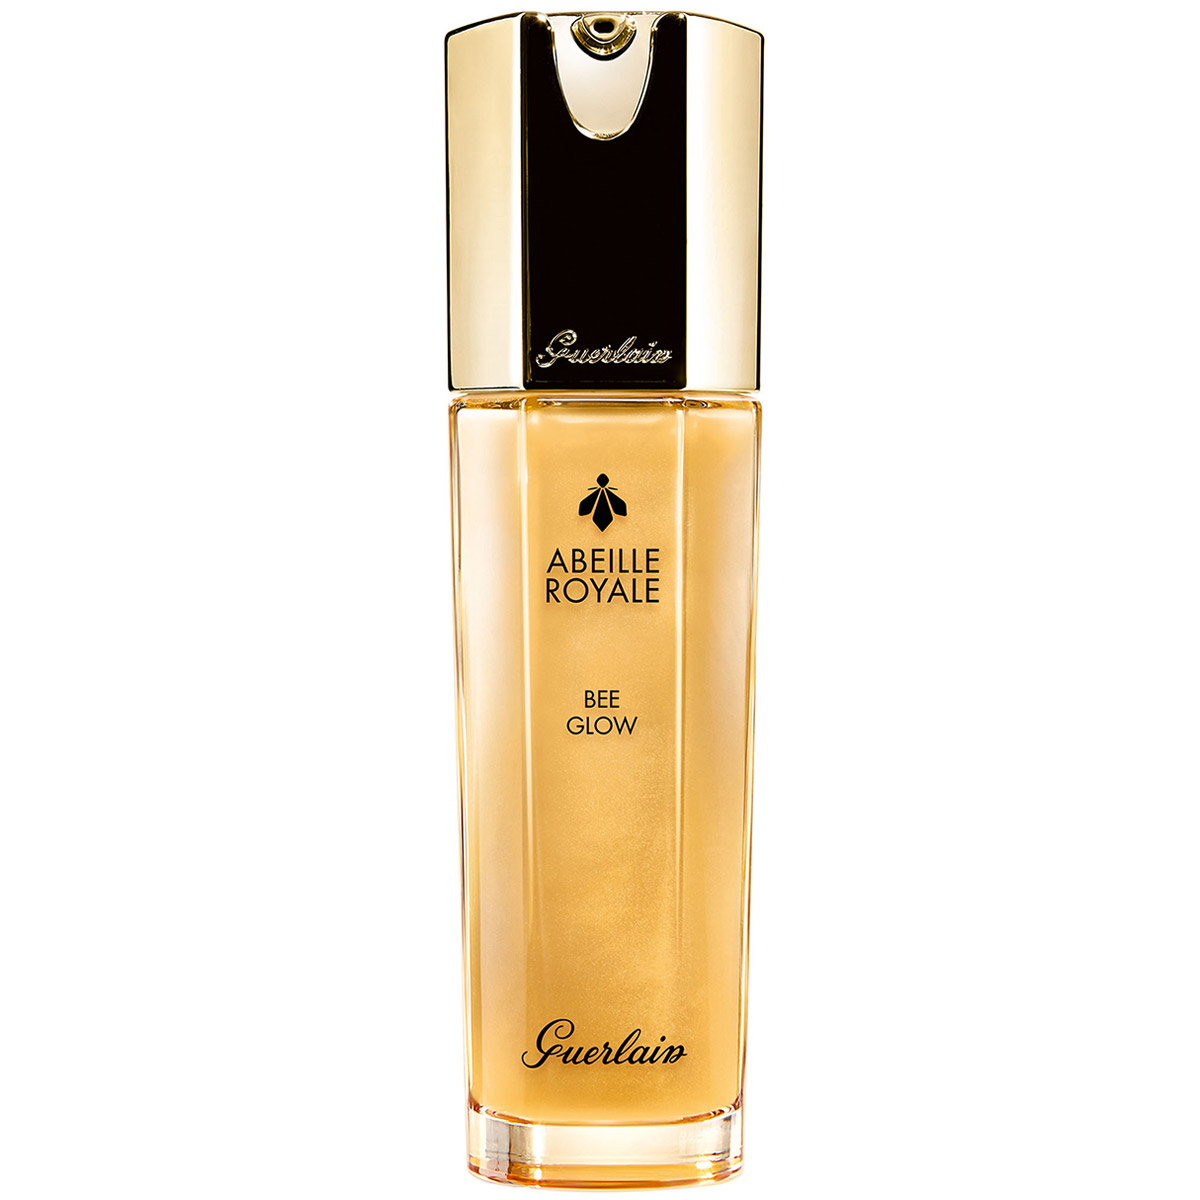 Guerlain - Abeille Royale - Bee Glow 30 ml